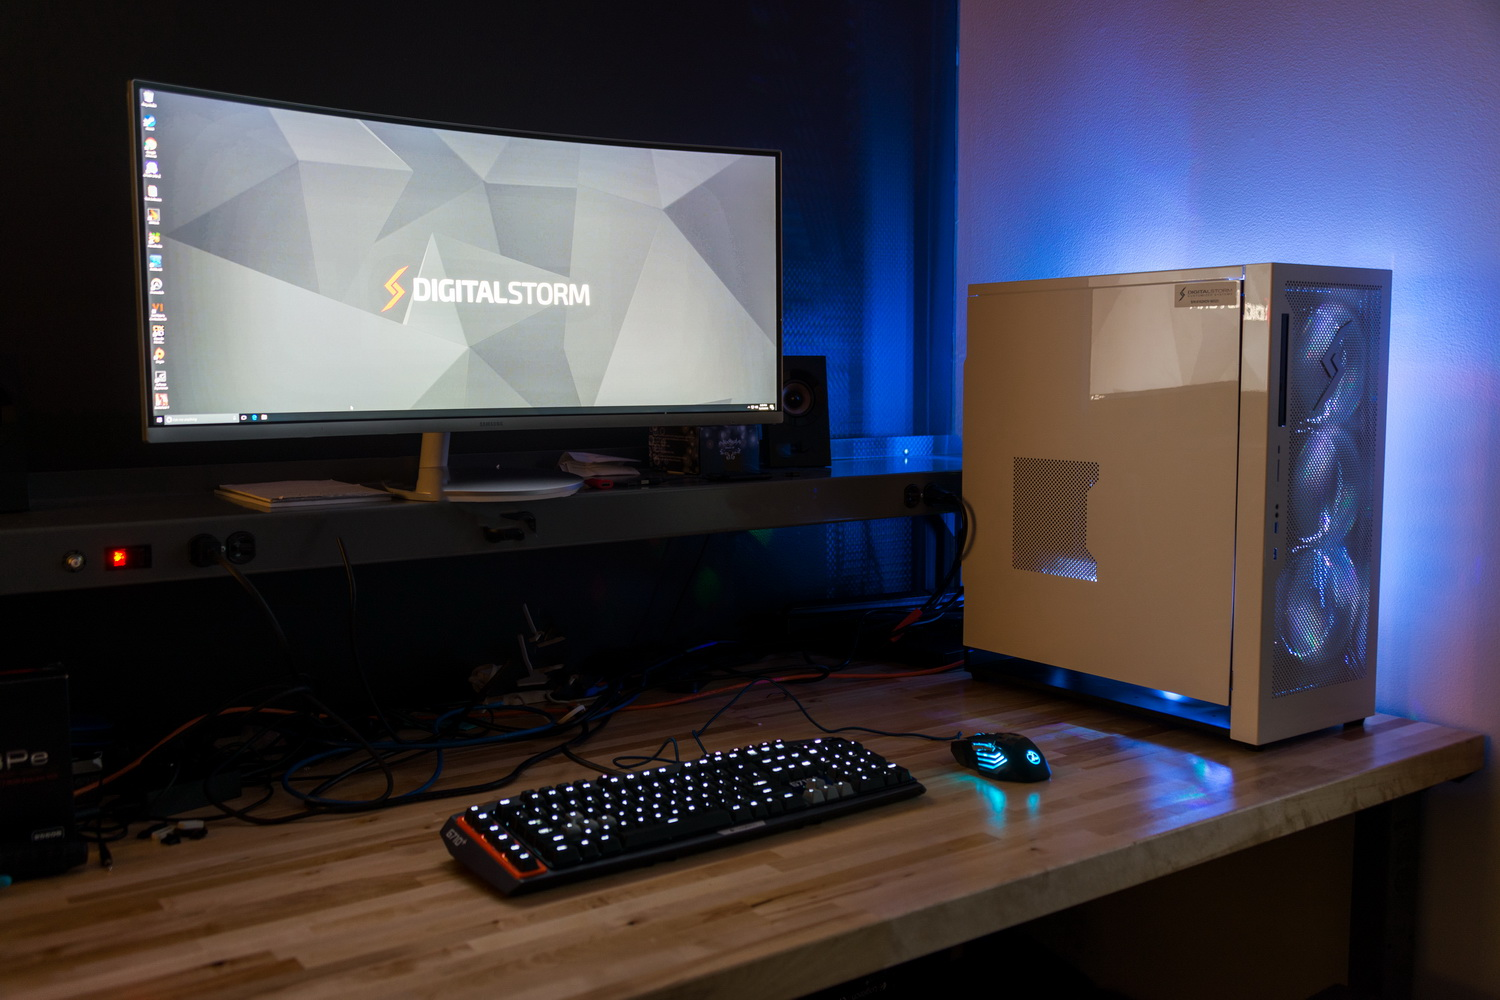 How To Make Your Home High Tech The Best Gaming Desktop Pcs Of 2017 Digital Trends